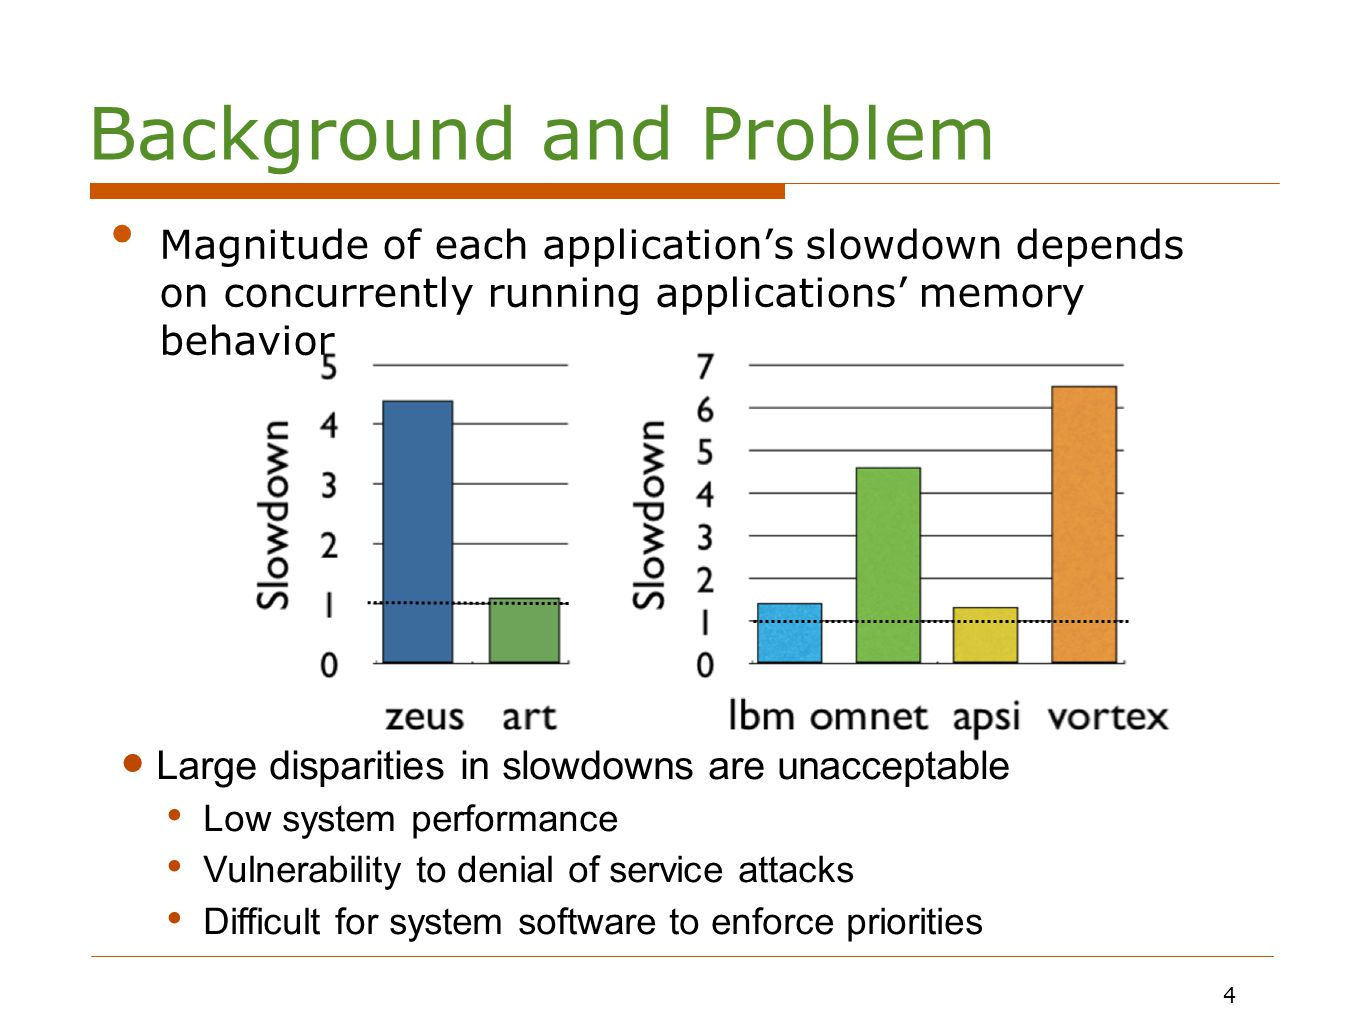 4 Magnitude of each application's slowdown depends on concurrently running applications' memory behavior Large disparities in slowdowns are unacceptable Low system performance Vulnerability to denial of service attacks Difficult for system software to enforce priorities 4 Background and Problem